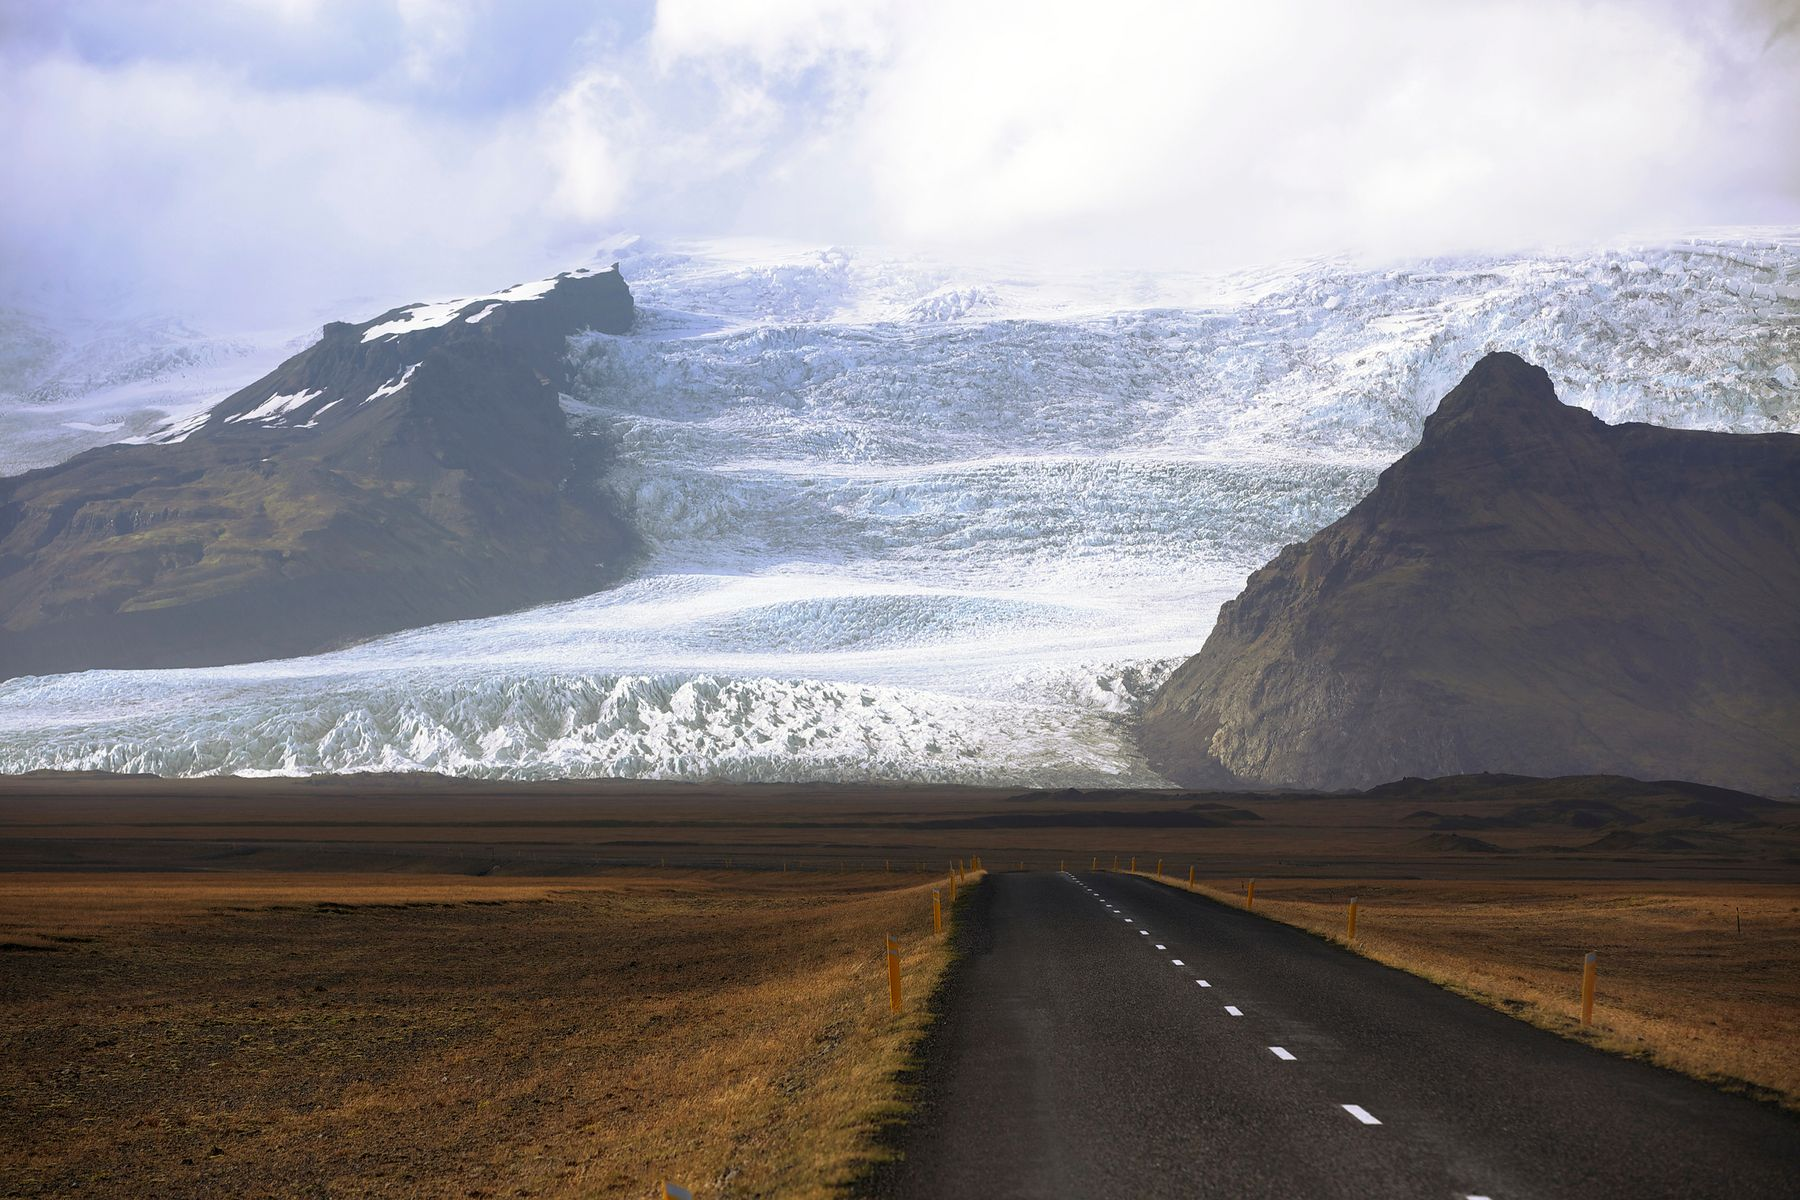 Americans who want to travel to Europe can now visit Iceland again